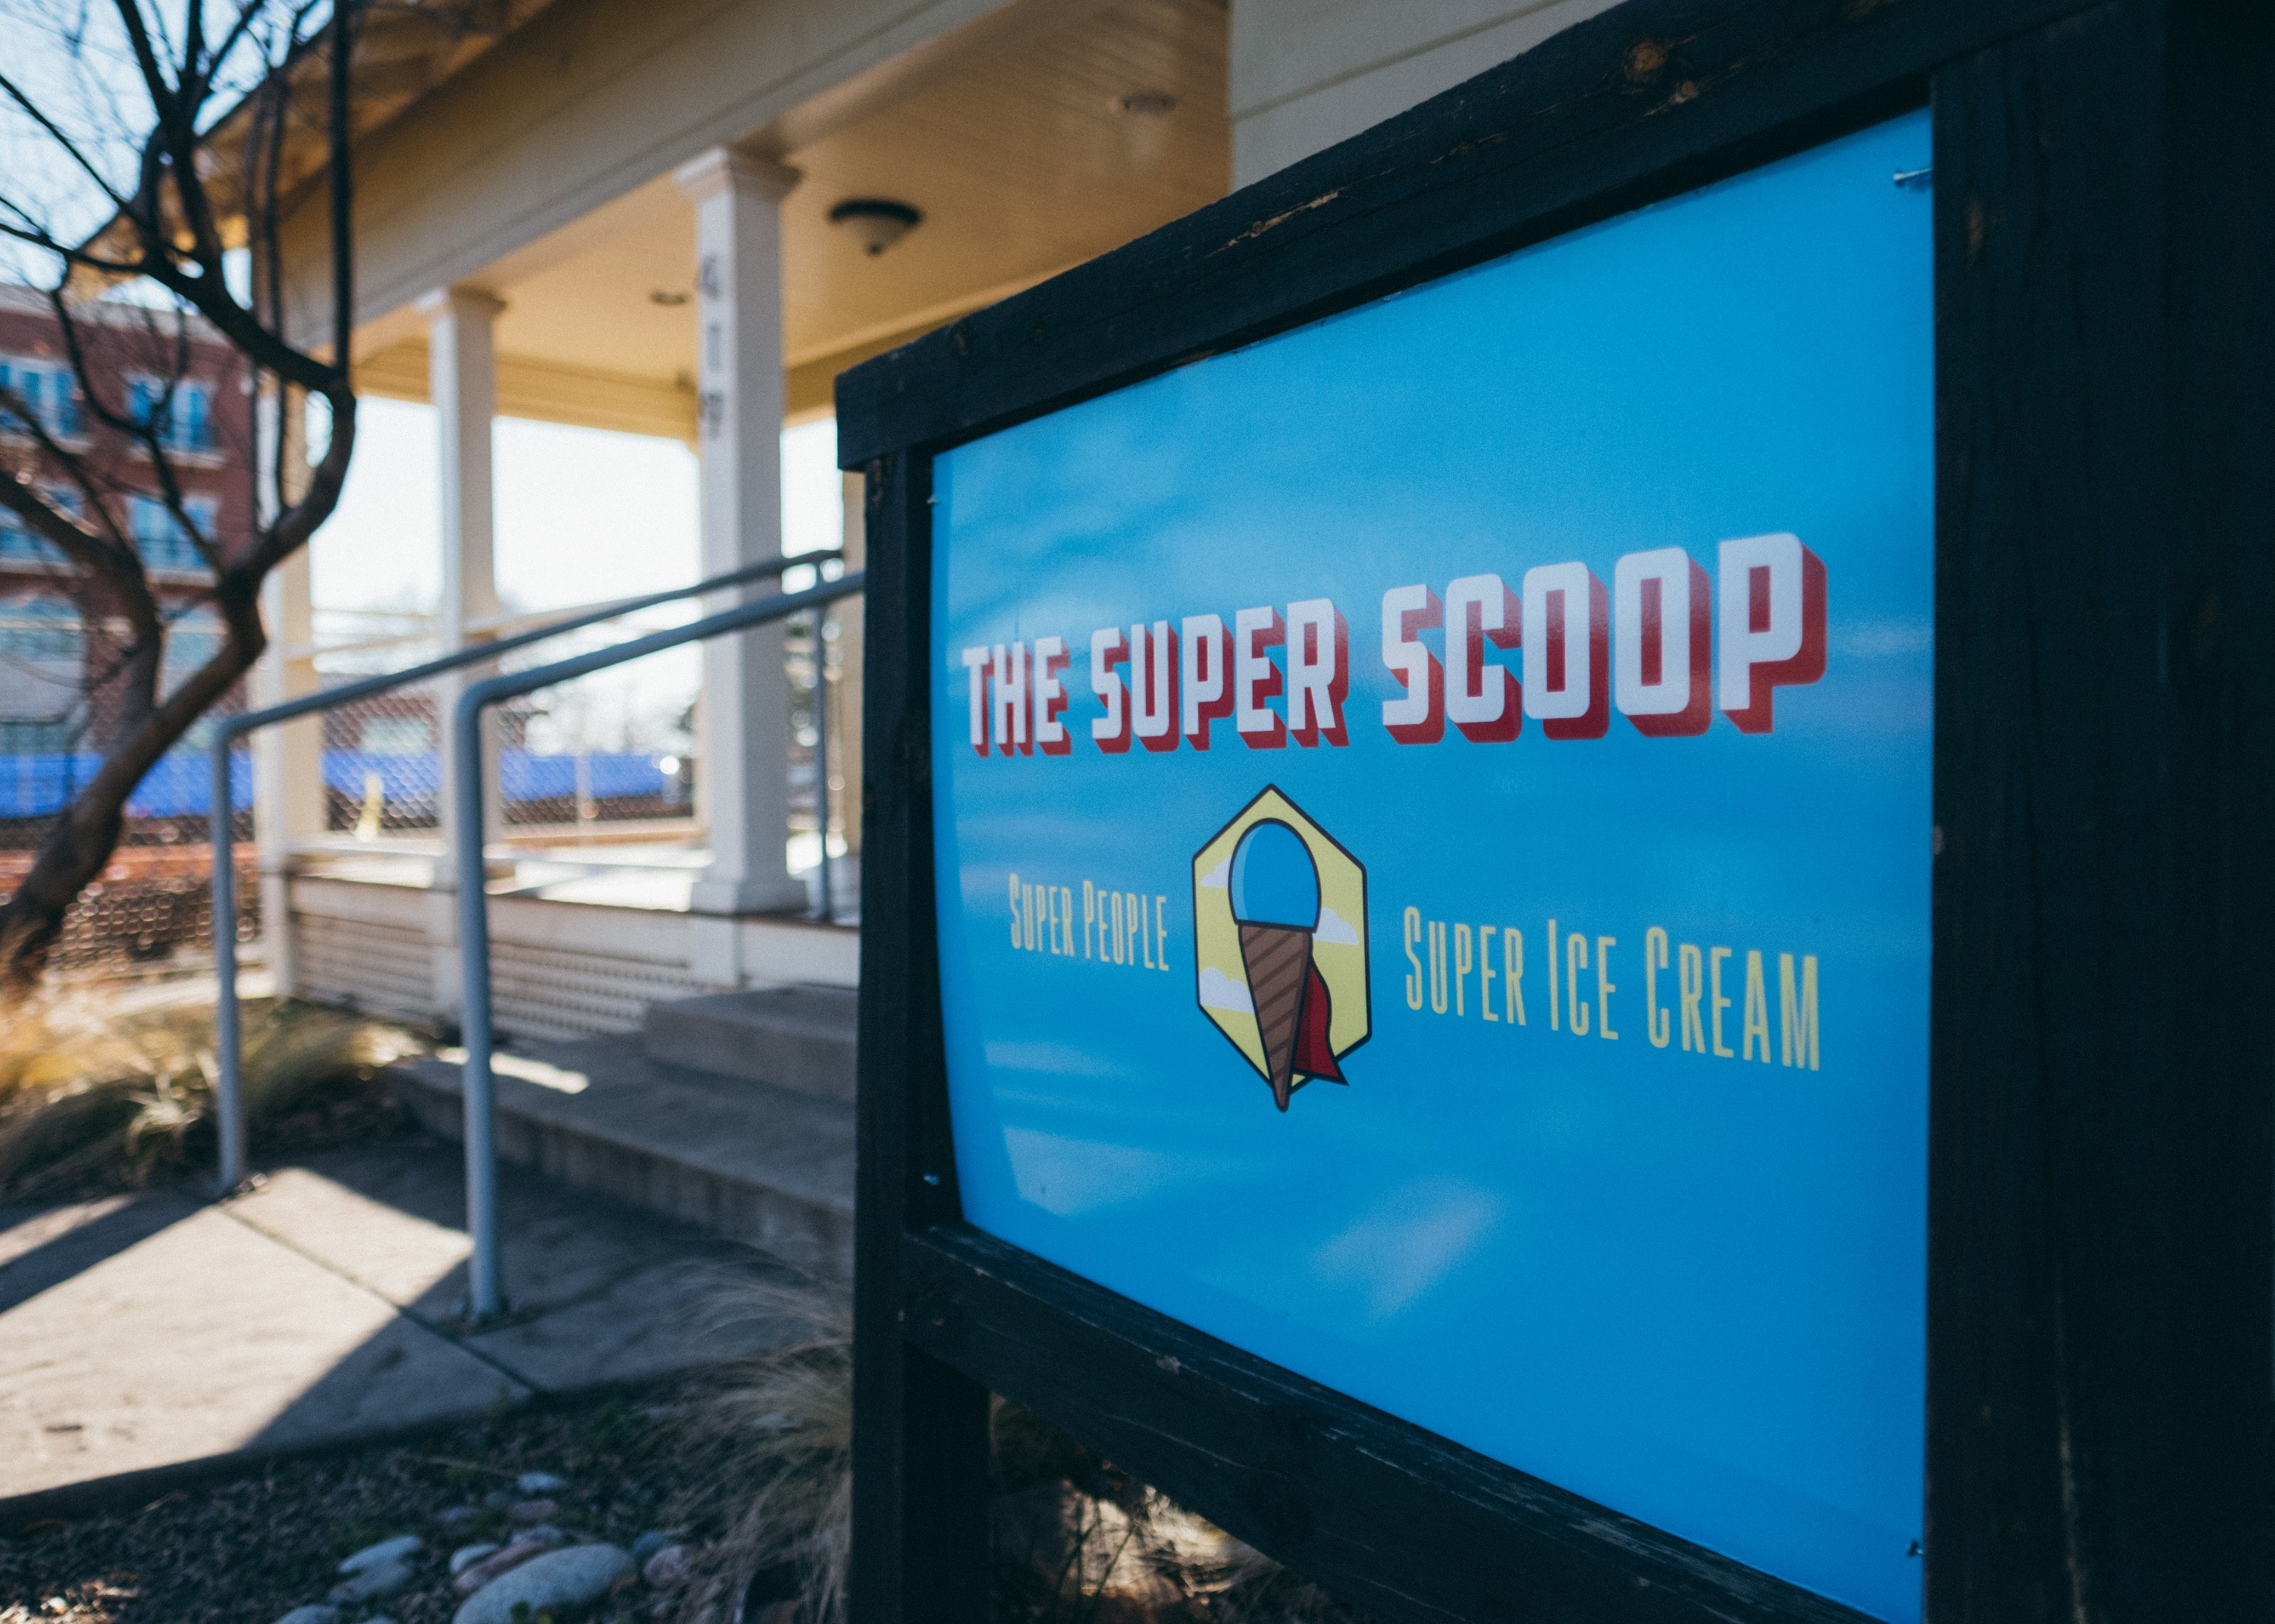 The Super Scoop's big blue sign in front of the store